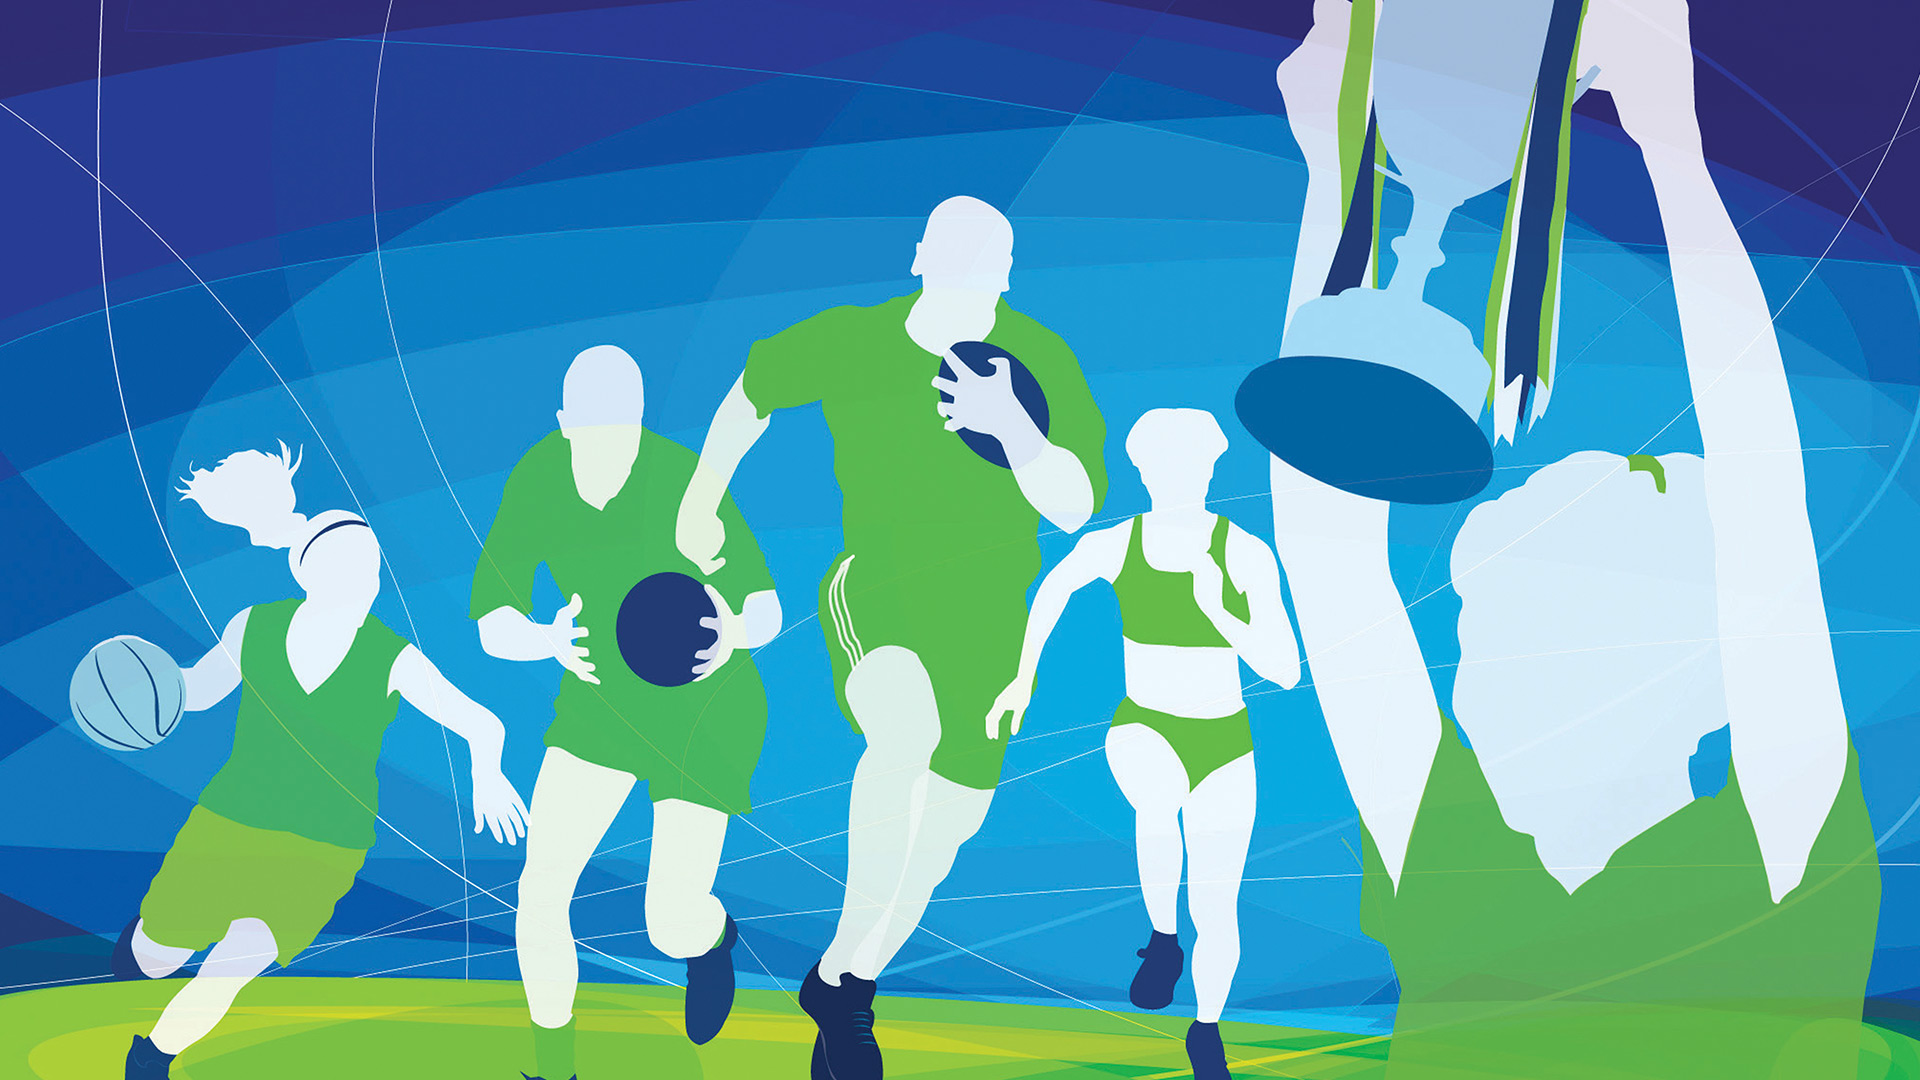 Ulster Sports Academy Illustrations